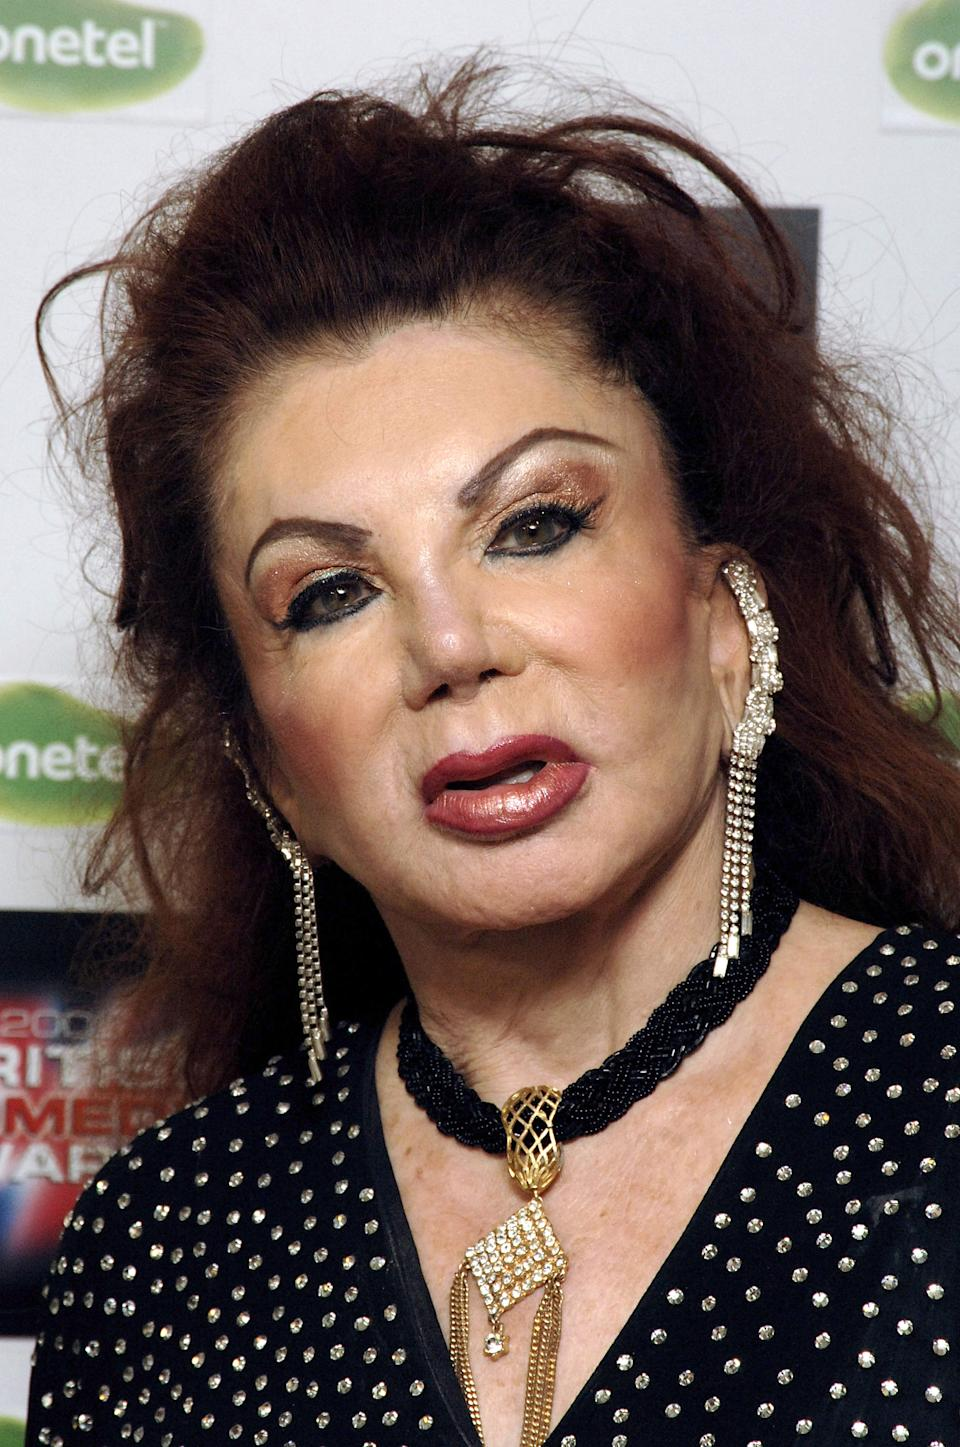 LONDON - DECEMBER 14:  (EMBARGOED FOR PUBLICATION IN UK TABLOID NEWSPAPERS UNTIL 48 HOURS AFTER CREATE DATE AND TIME)  Jackie Stallone arrives for the British Comedy Awards 2005 at London Television Studios on December 14, 2005 in London, England.  (Photo by Dave M. Benett/Getty Images)